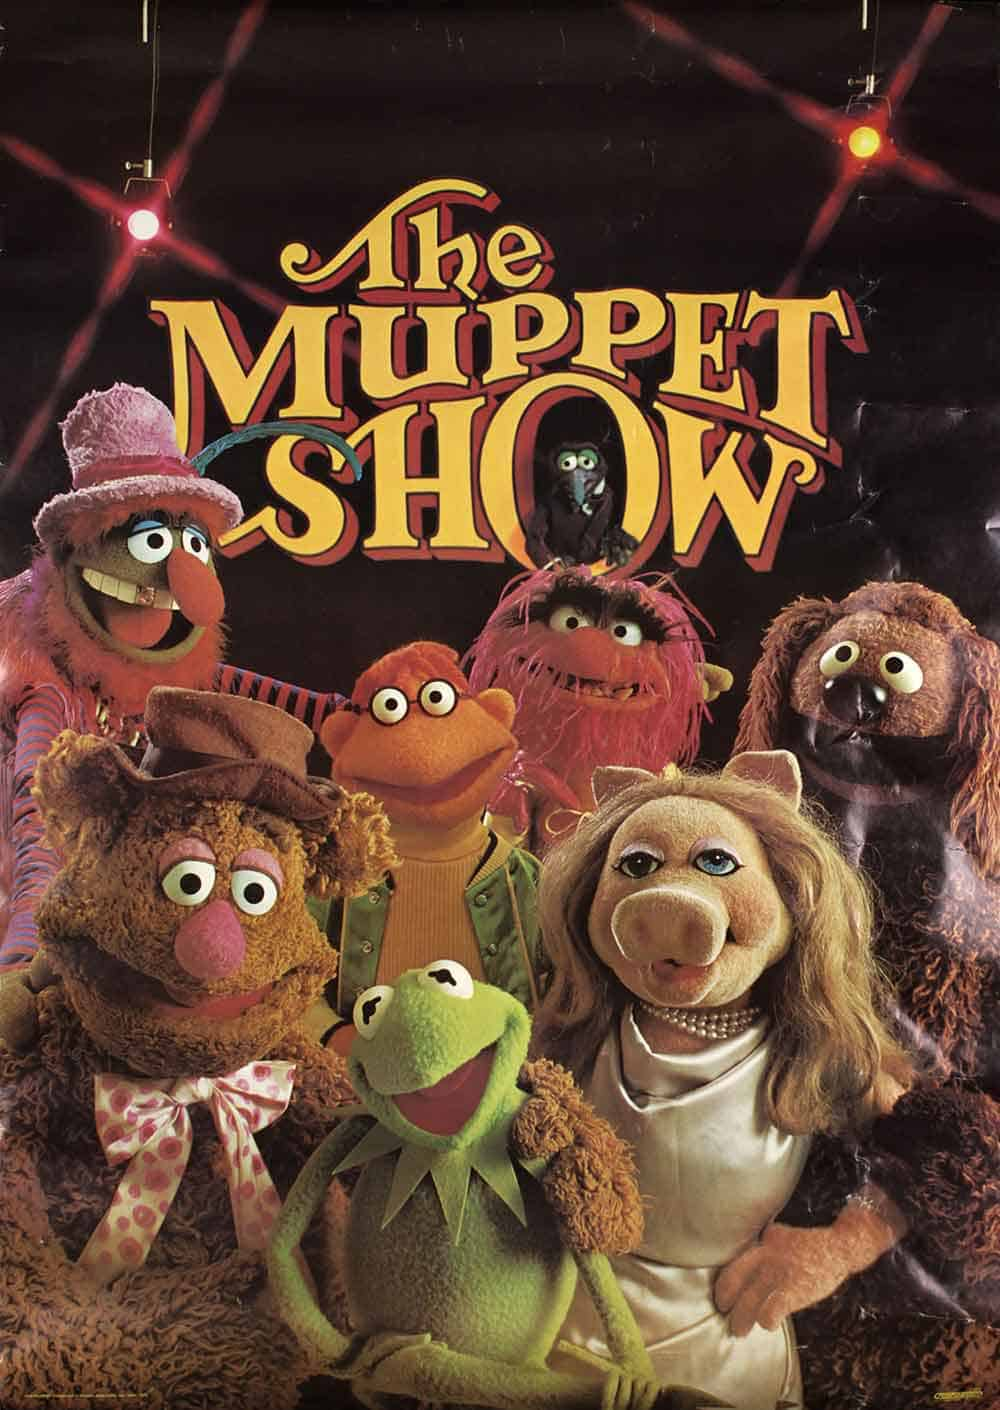 Muppet Show poster